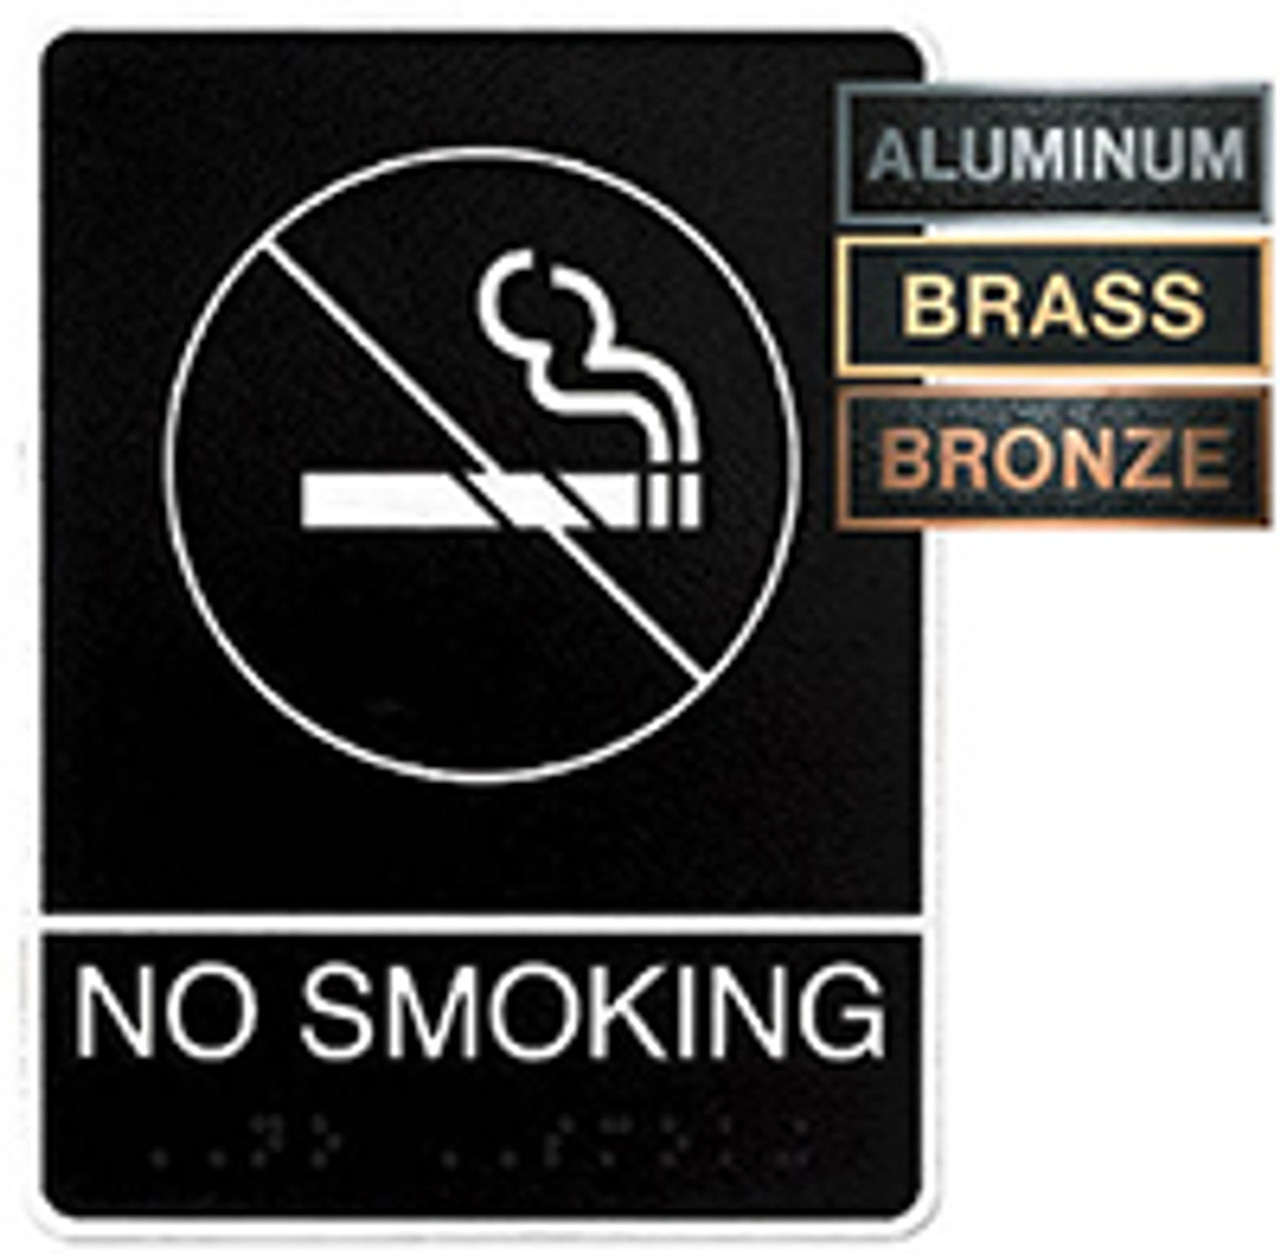 No Smoking Metal ADA Plaque